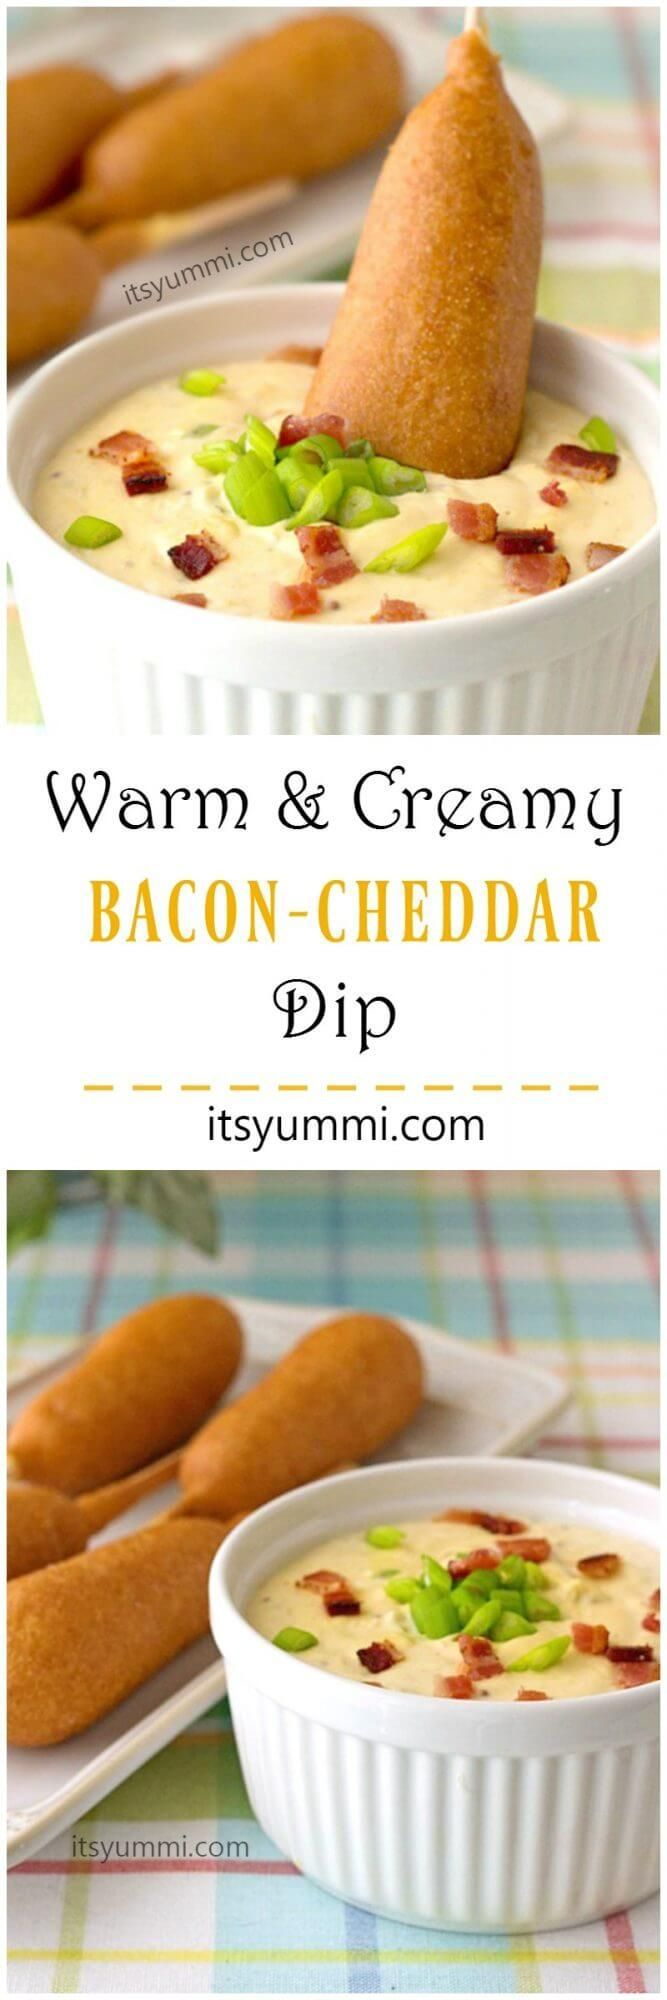 47 best images about Party dips on Pinterest | Black beans ...